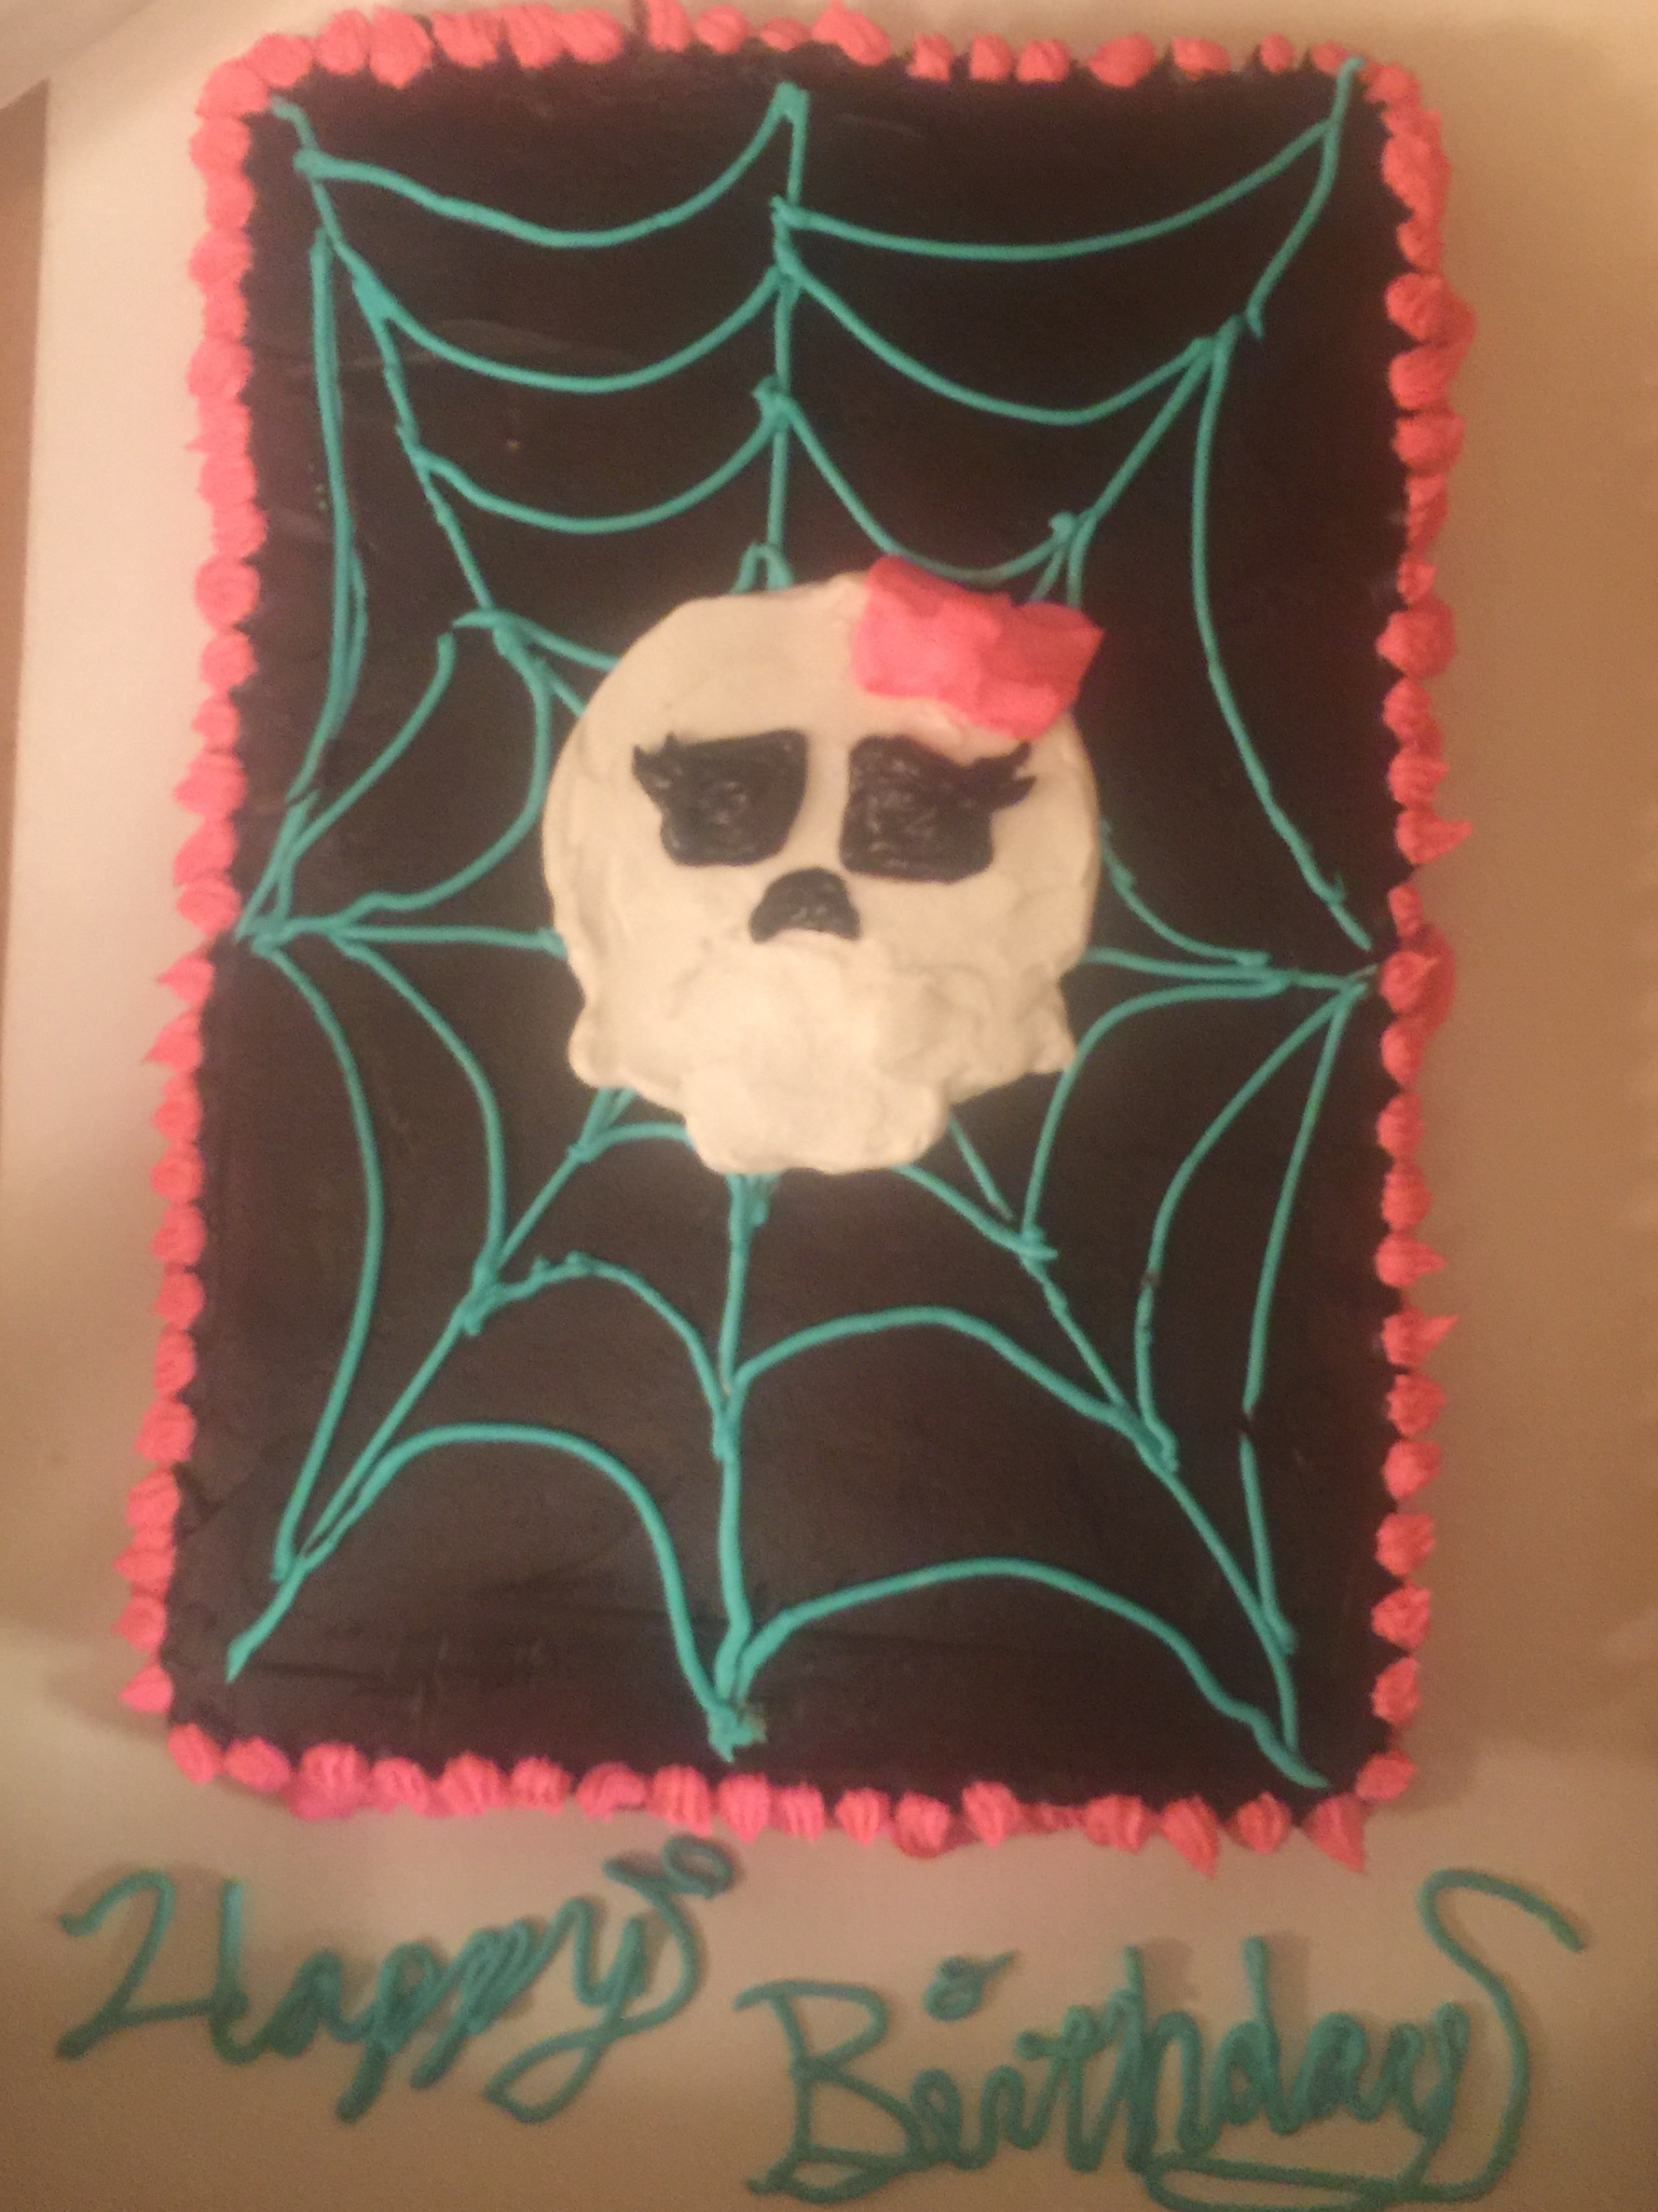 This one is for a 5 year old who love monster high dolls. I had to look up what they were but it turned out pretty cute.